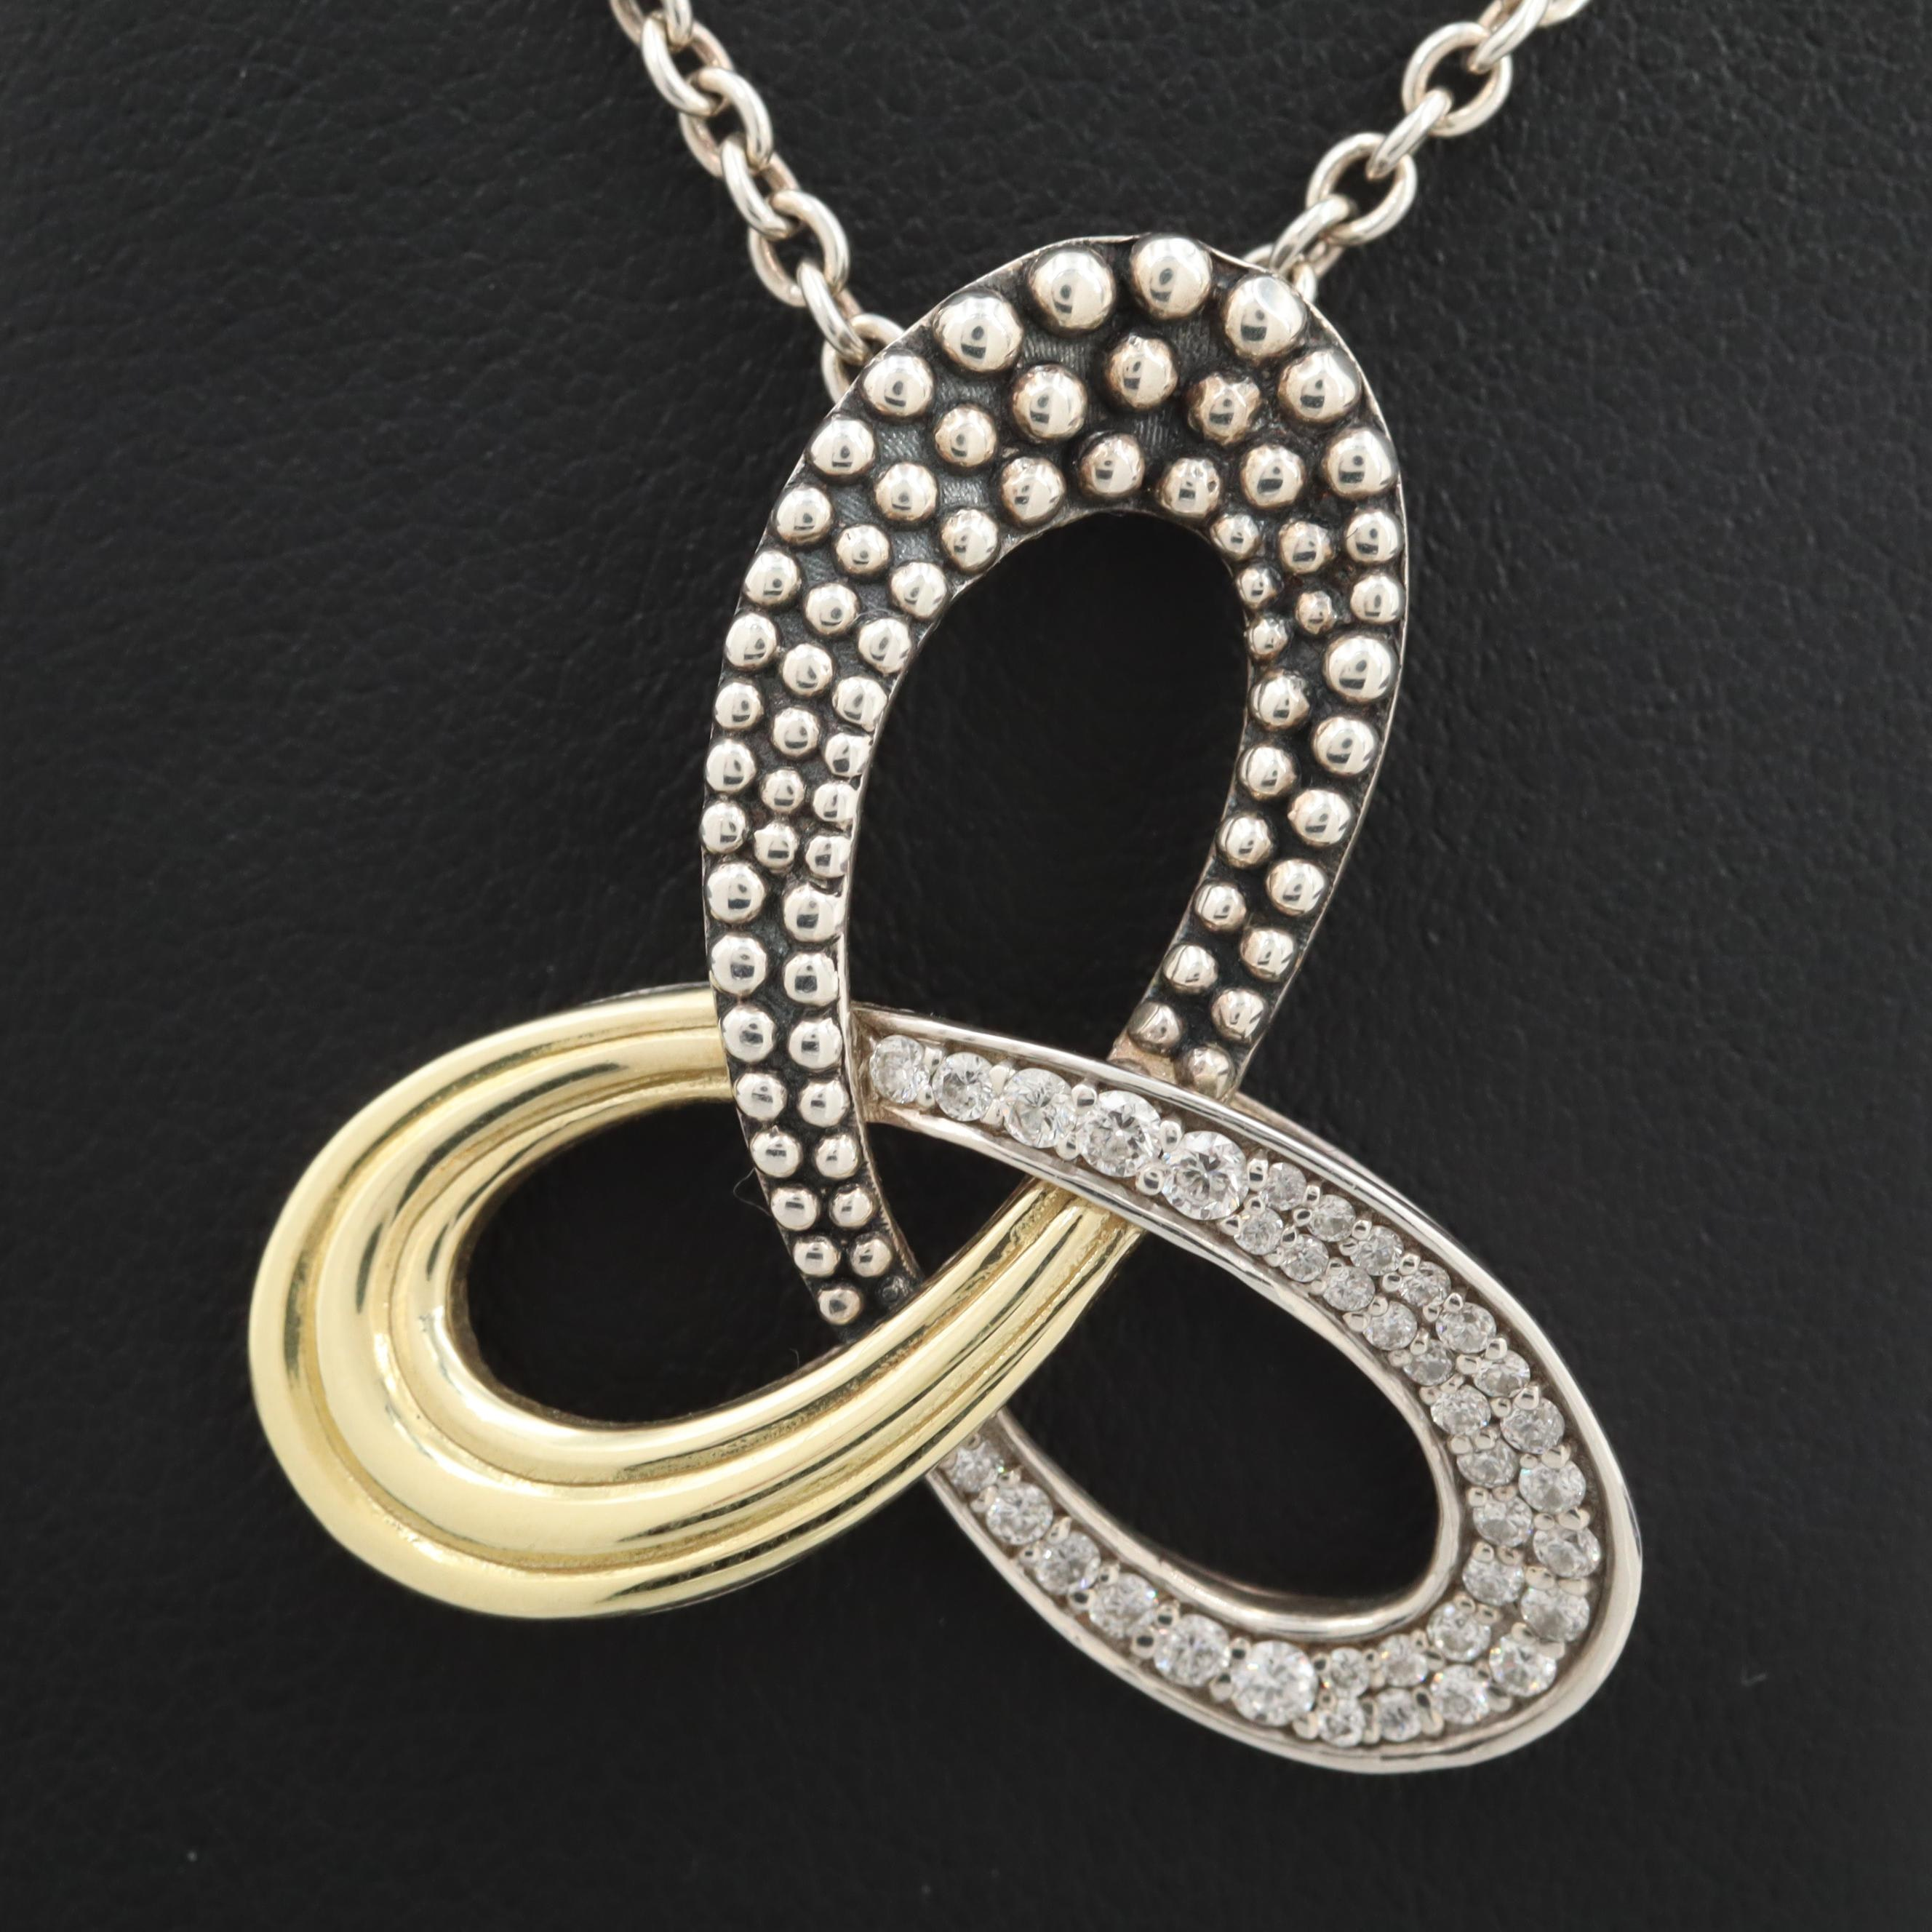 Lagos Sterling Silver Diamond Knot Pendant Necklace with 18K Accents